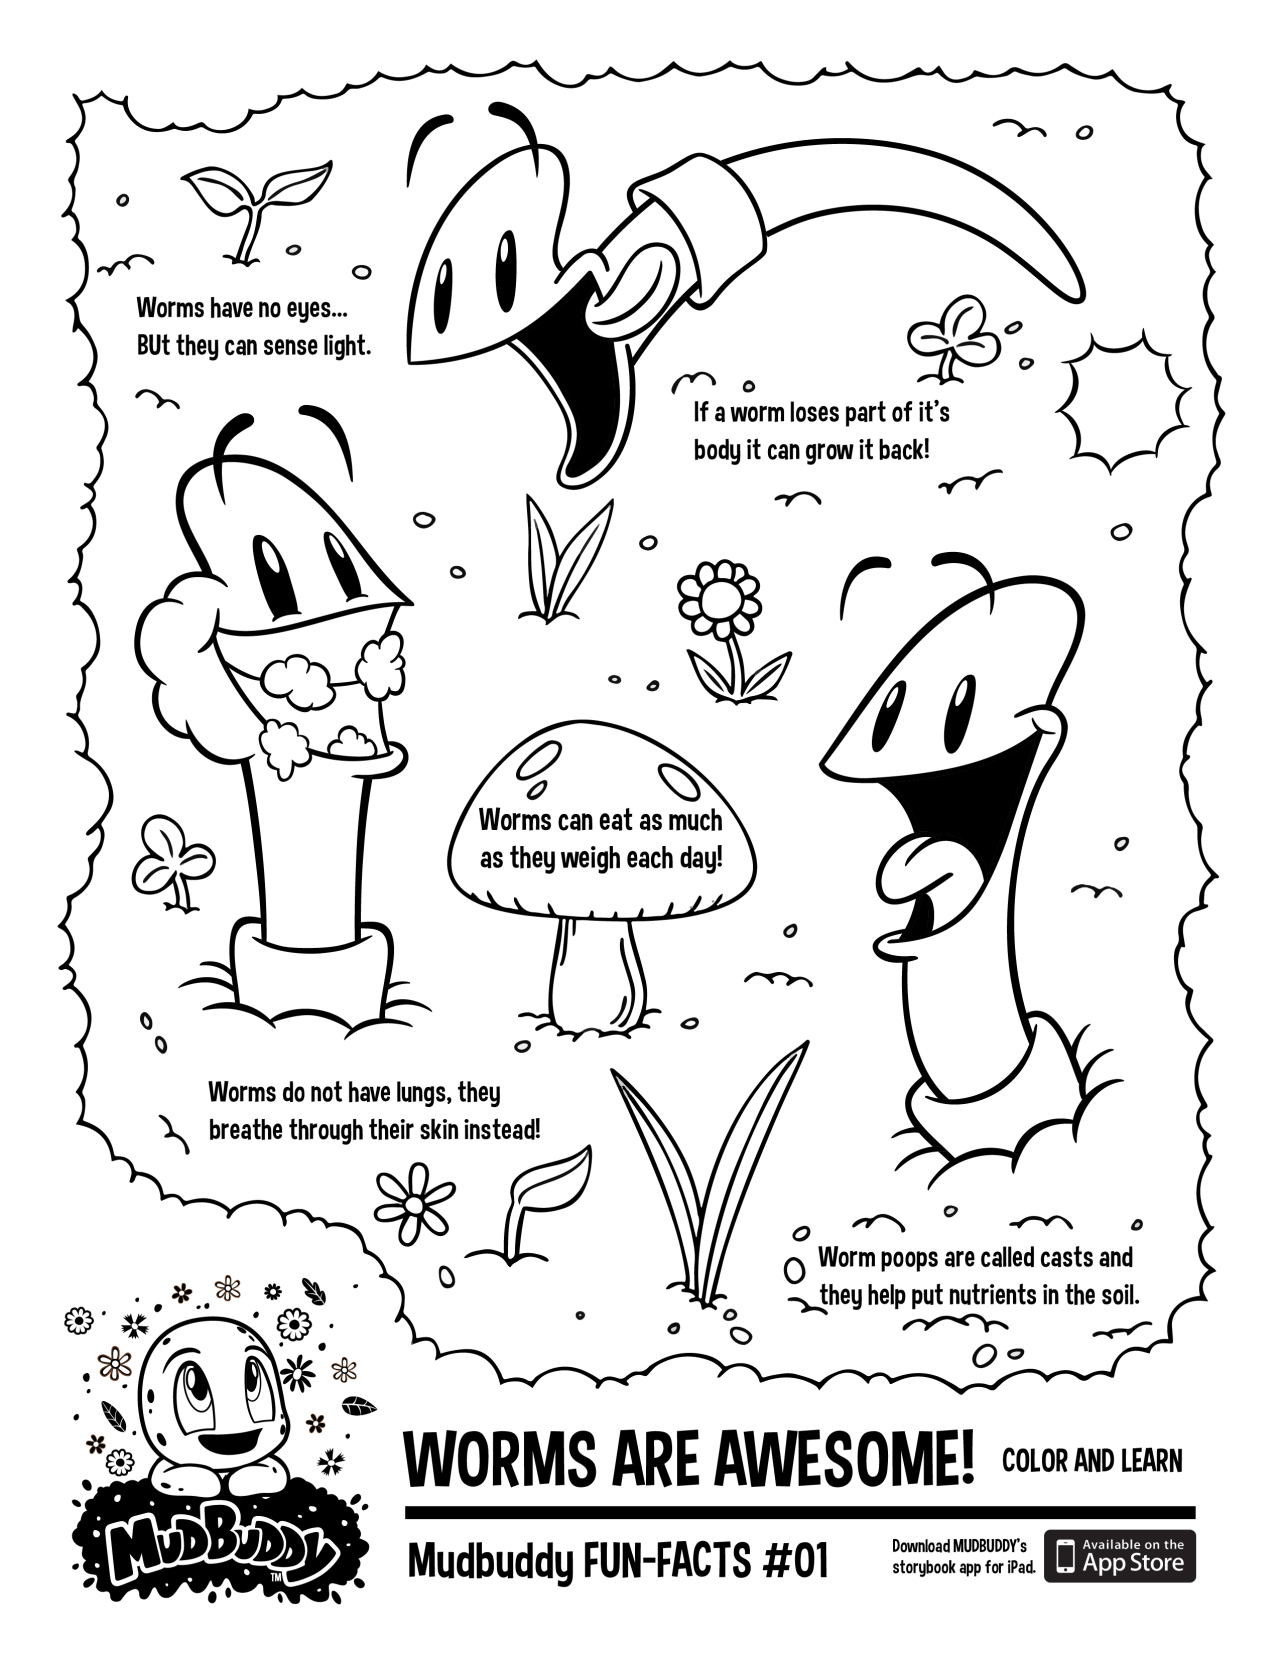 Mudbuddy Fun Facts Print Out This Page And Have Fun